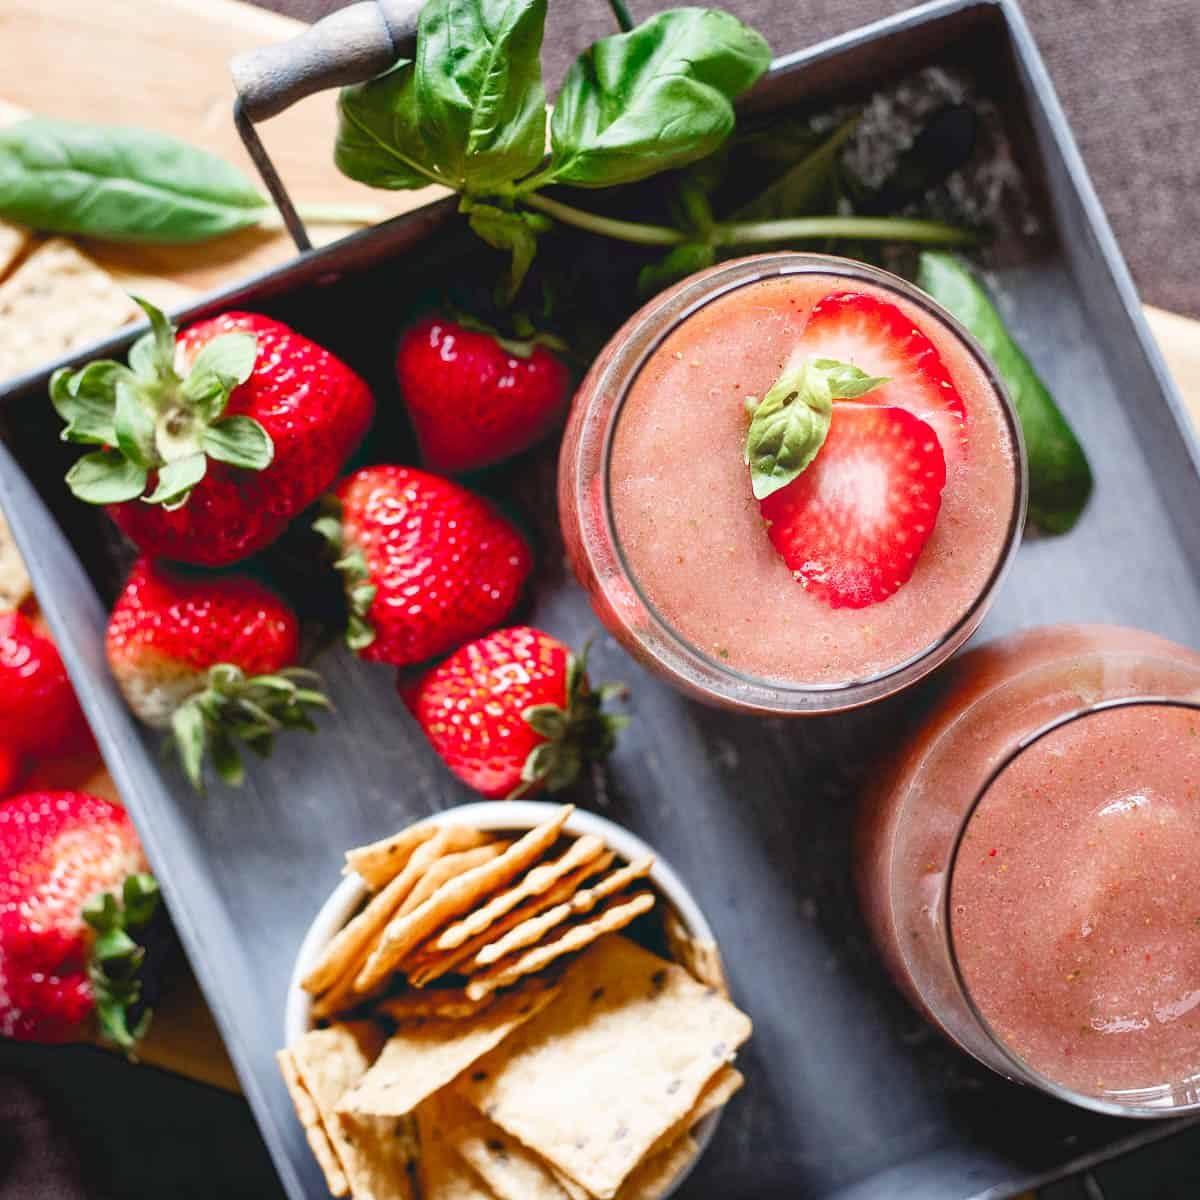 With just 3 ingredients, these strawberry basil cider slushies and some Crunchmaster crackers straight out of the bag make a great summer happy hour!